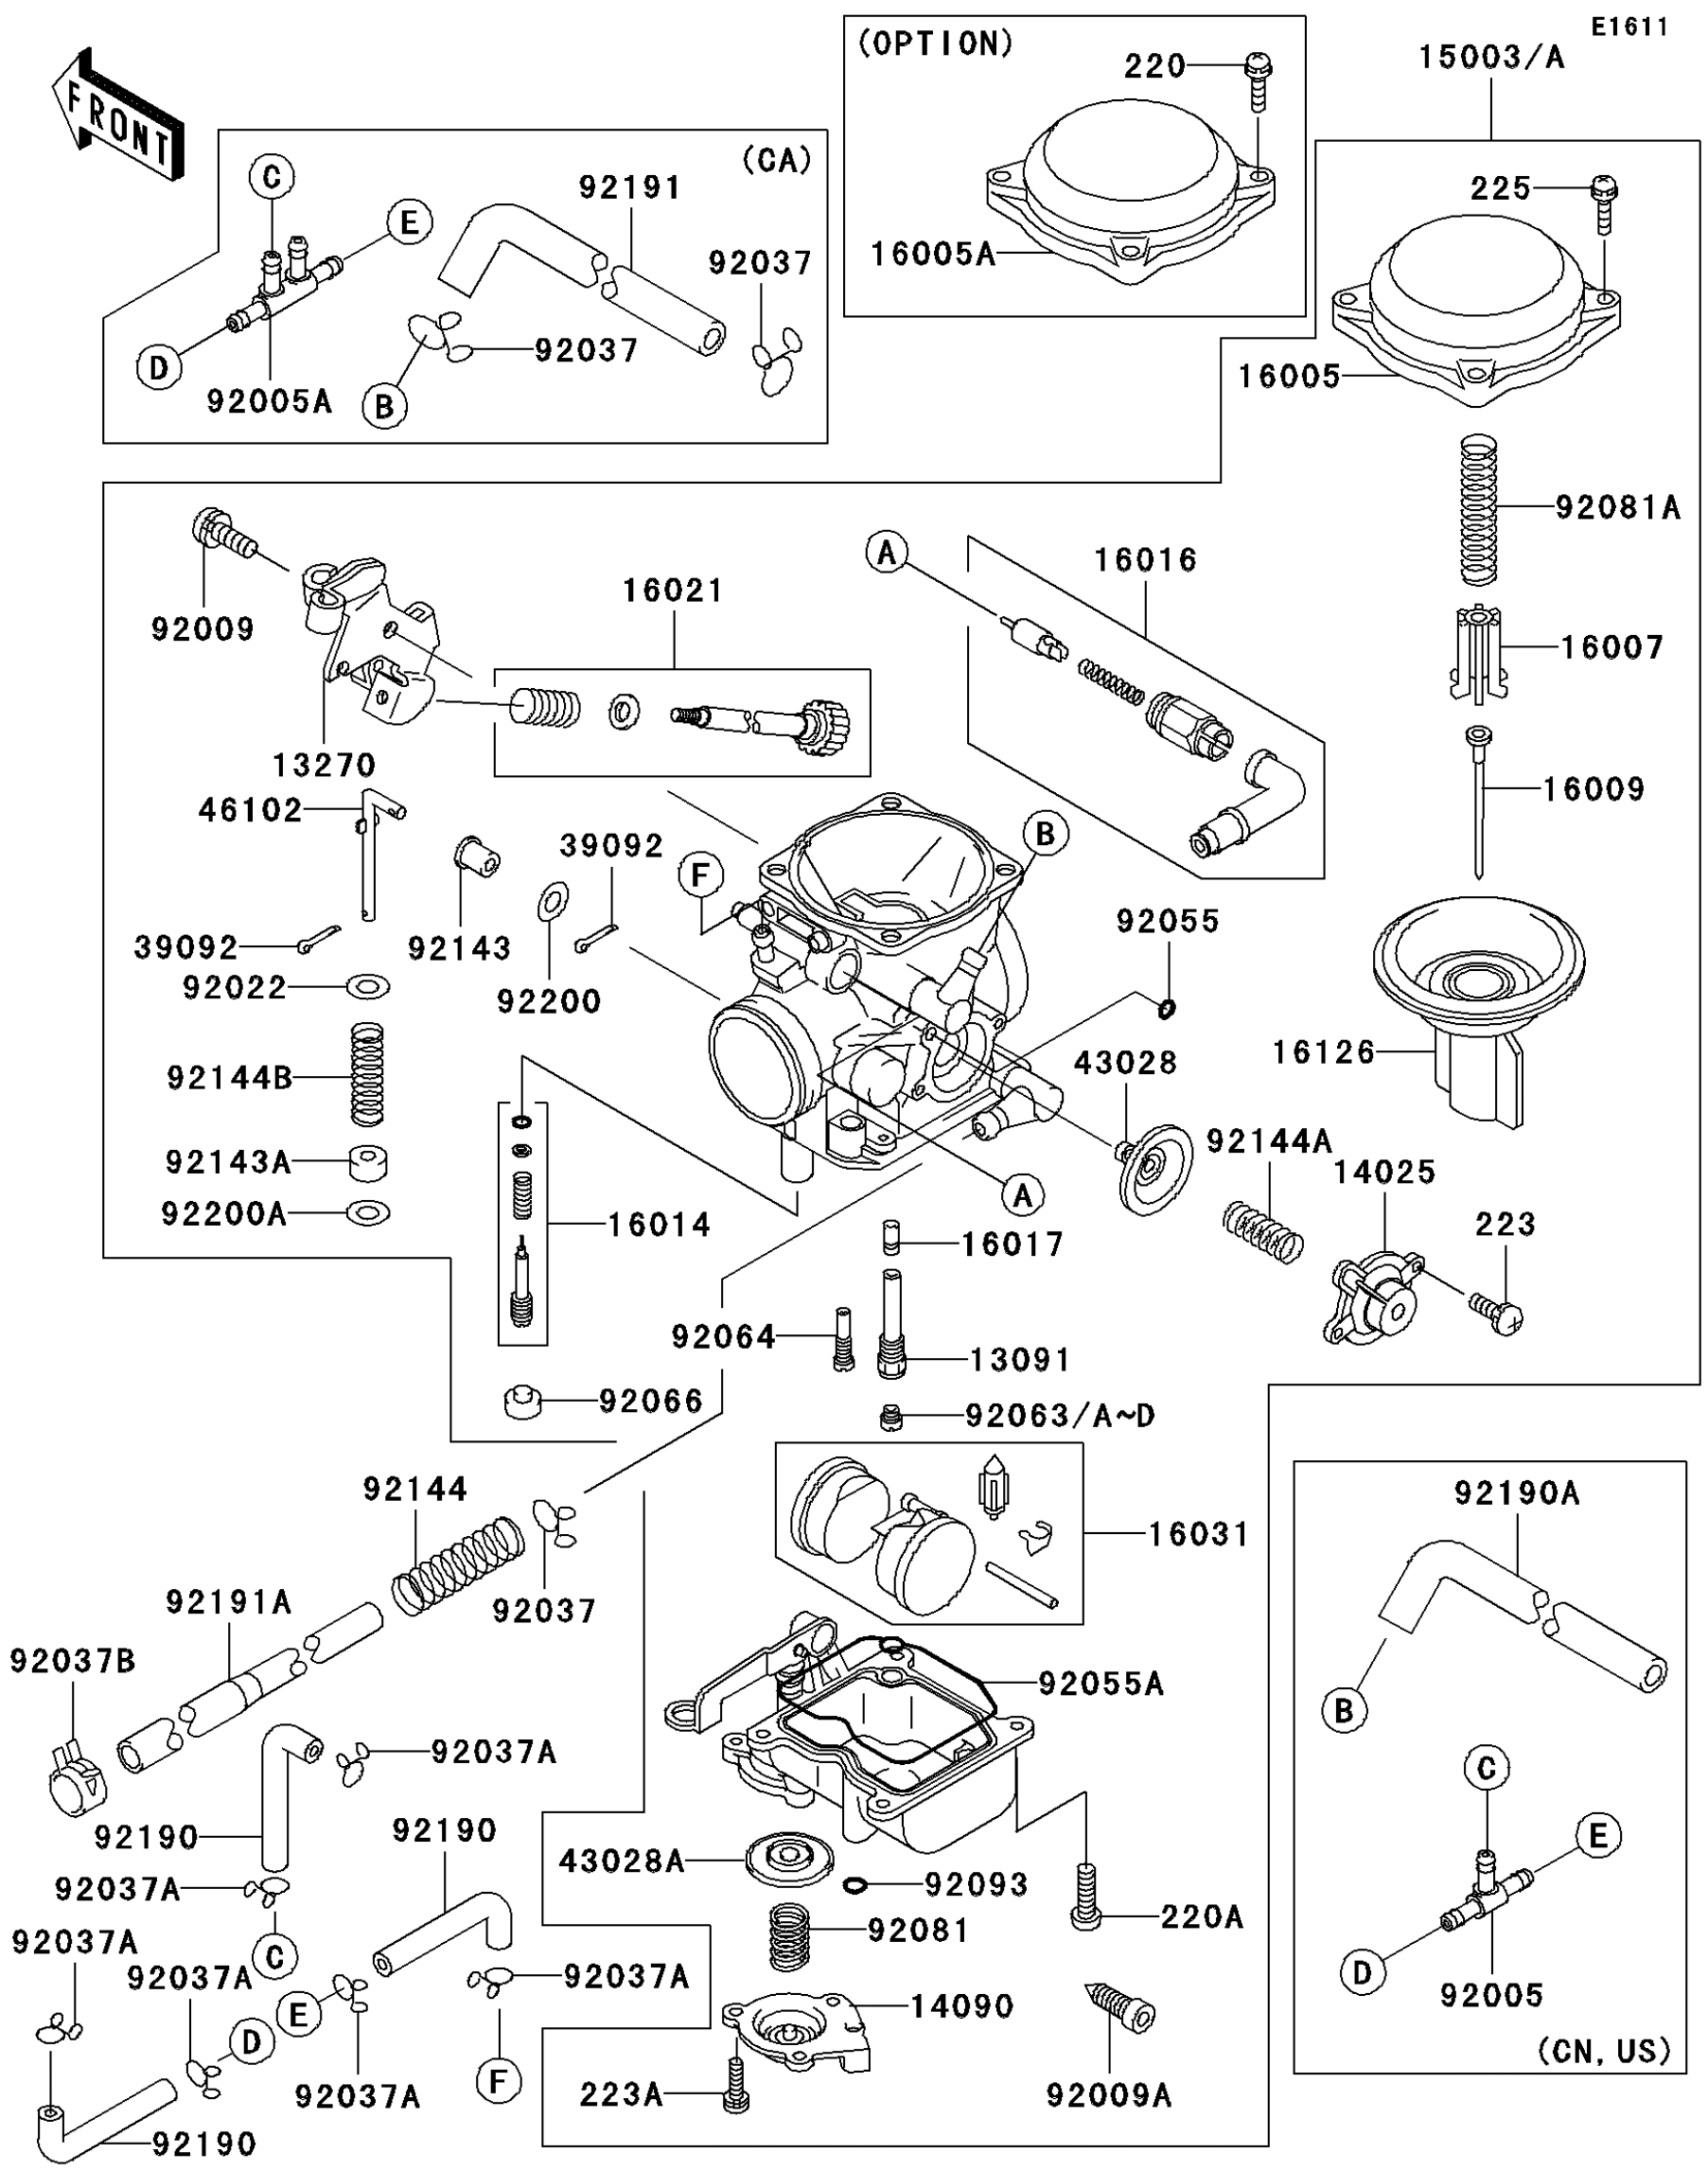 carburetor help  advice desperately needed  - page 3